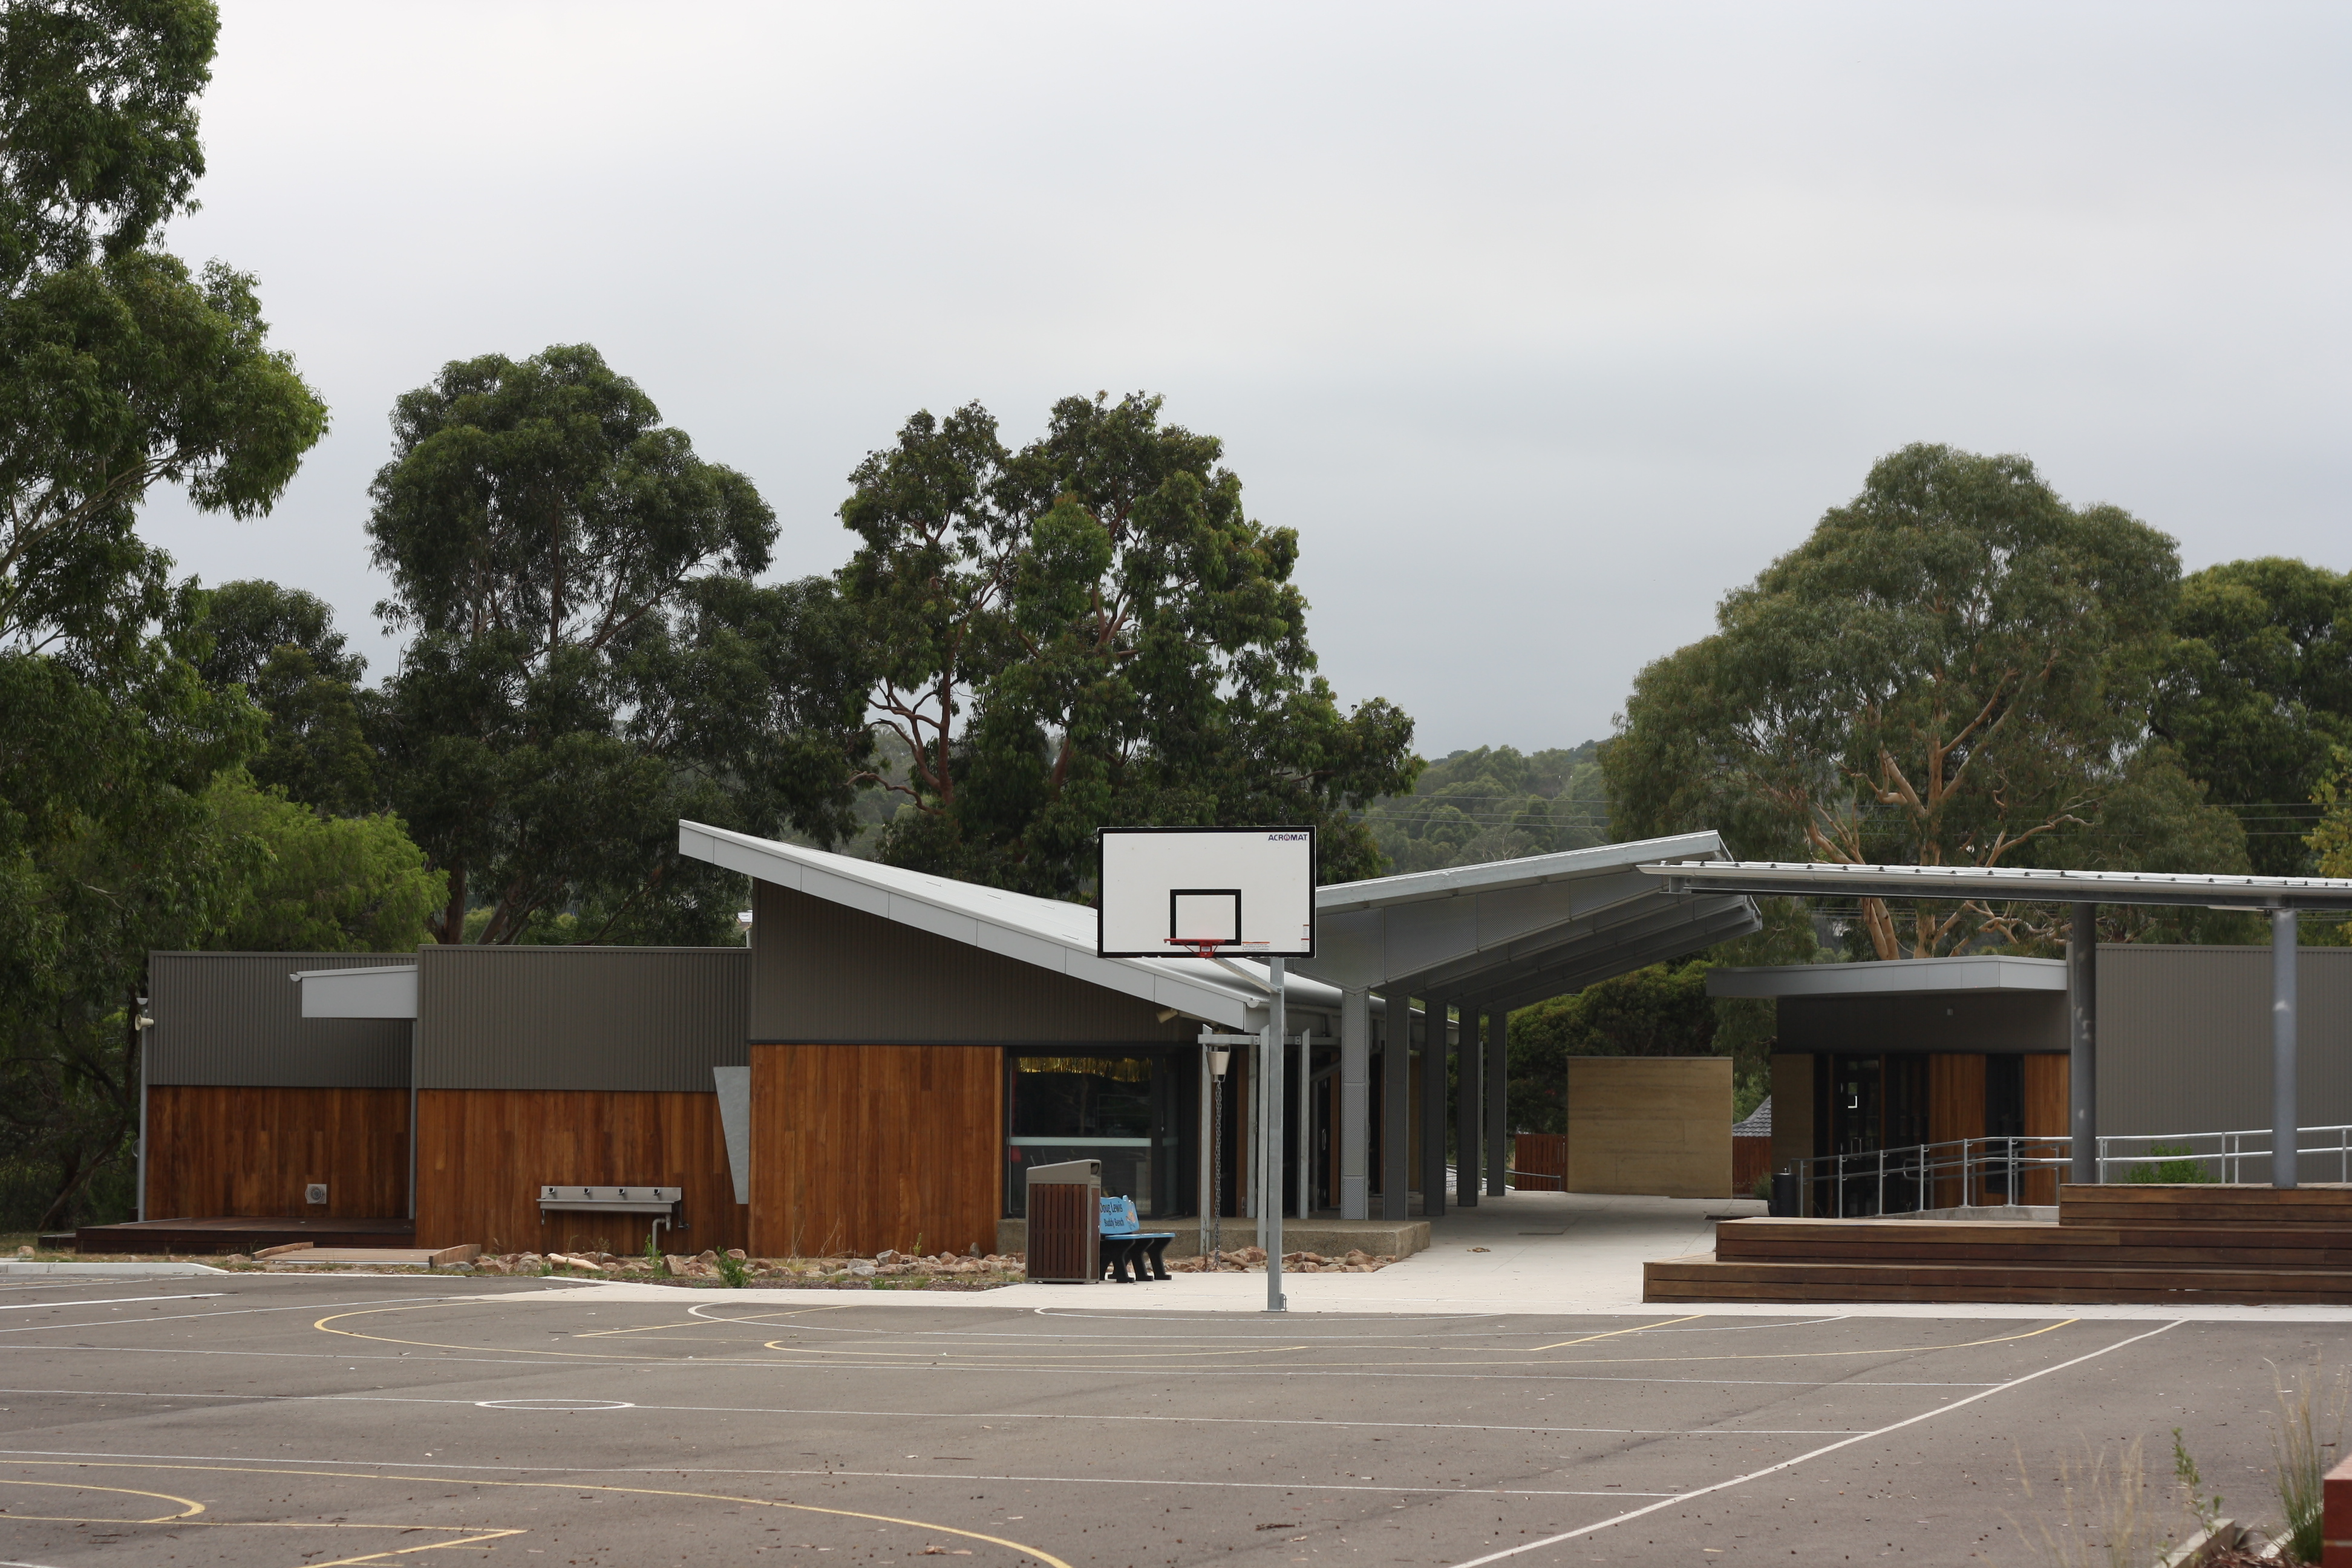 Basketball court view